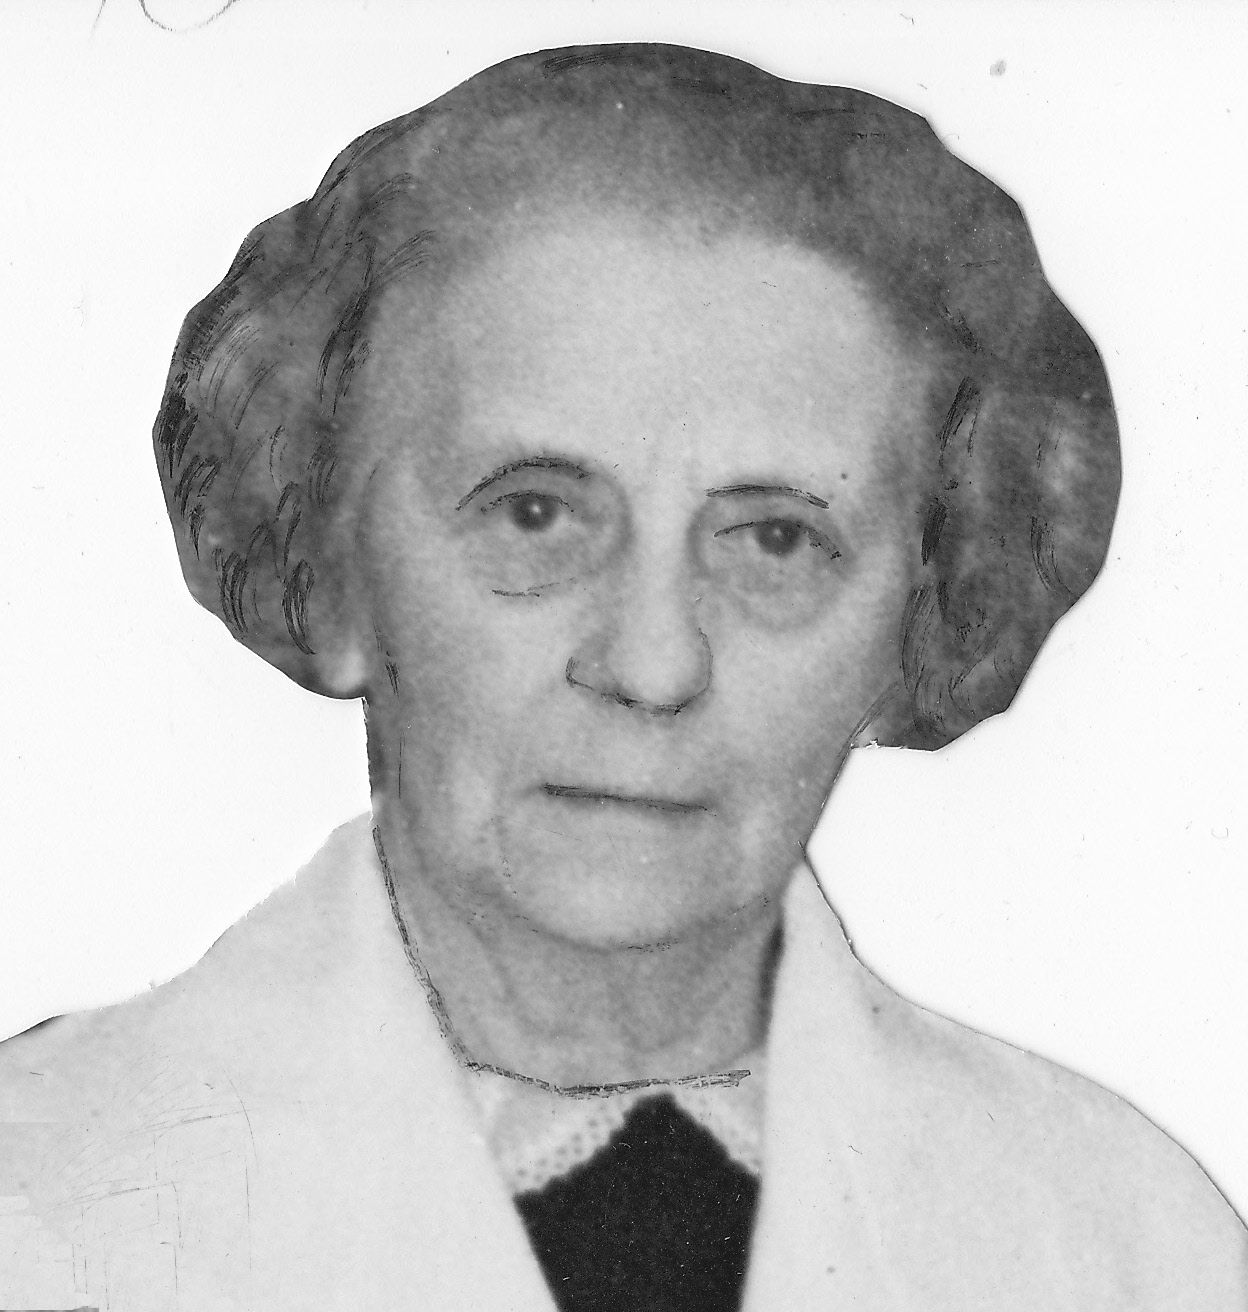 Miss Girling in 1939 on retirement